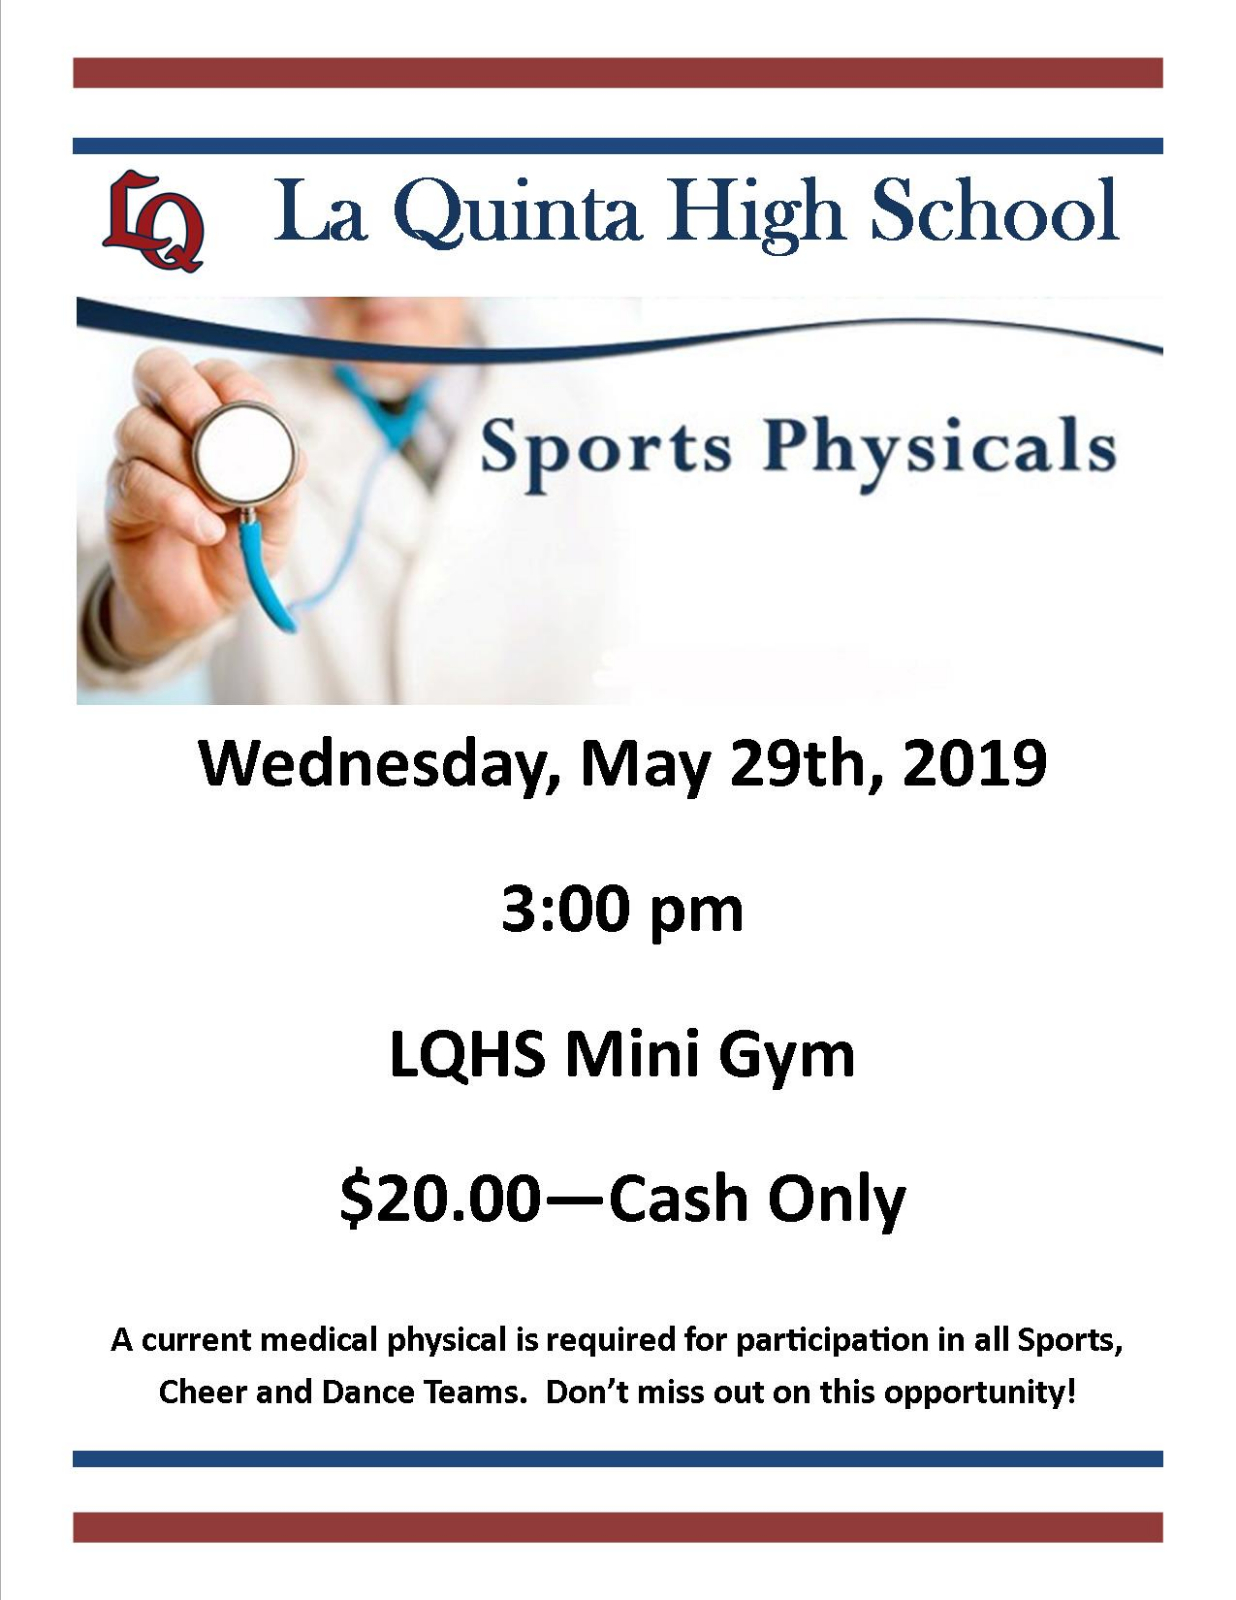 Sports physicals coming soon!!